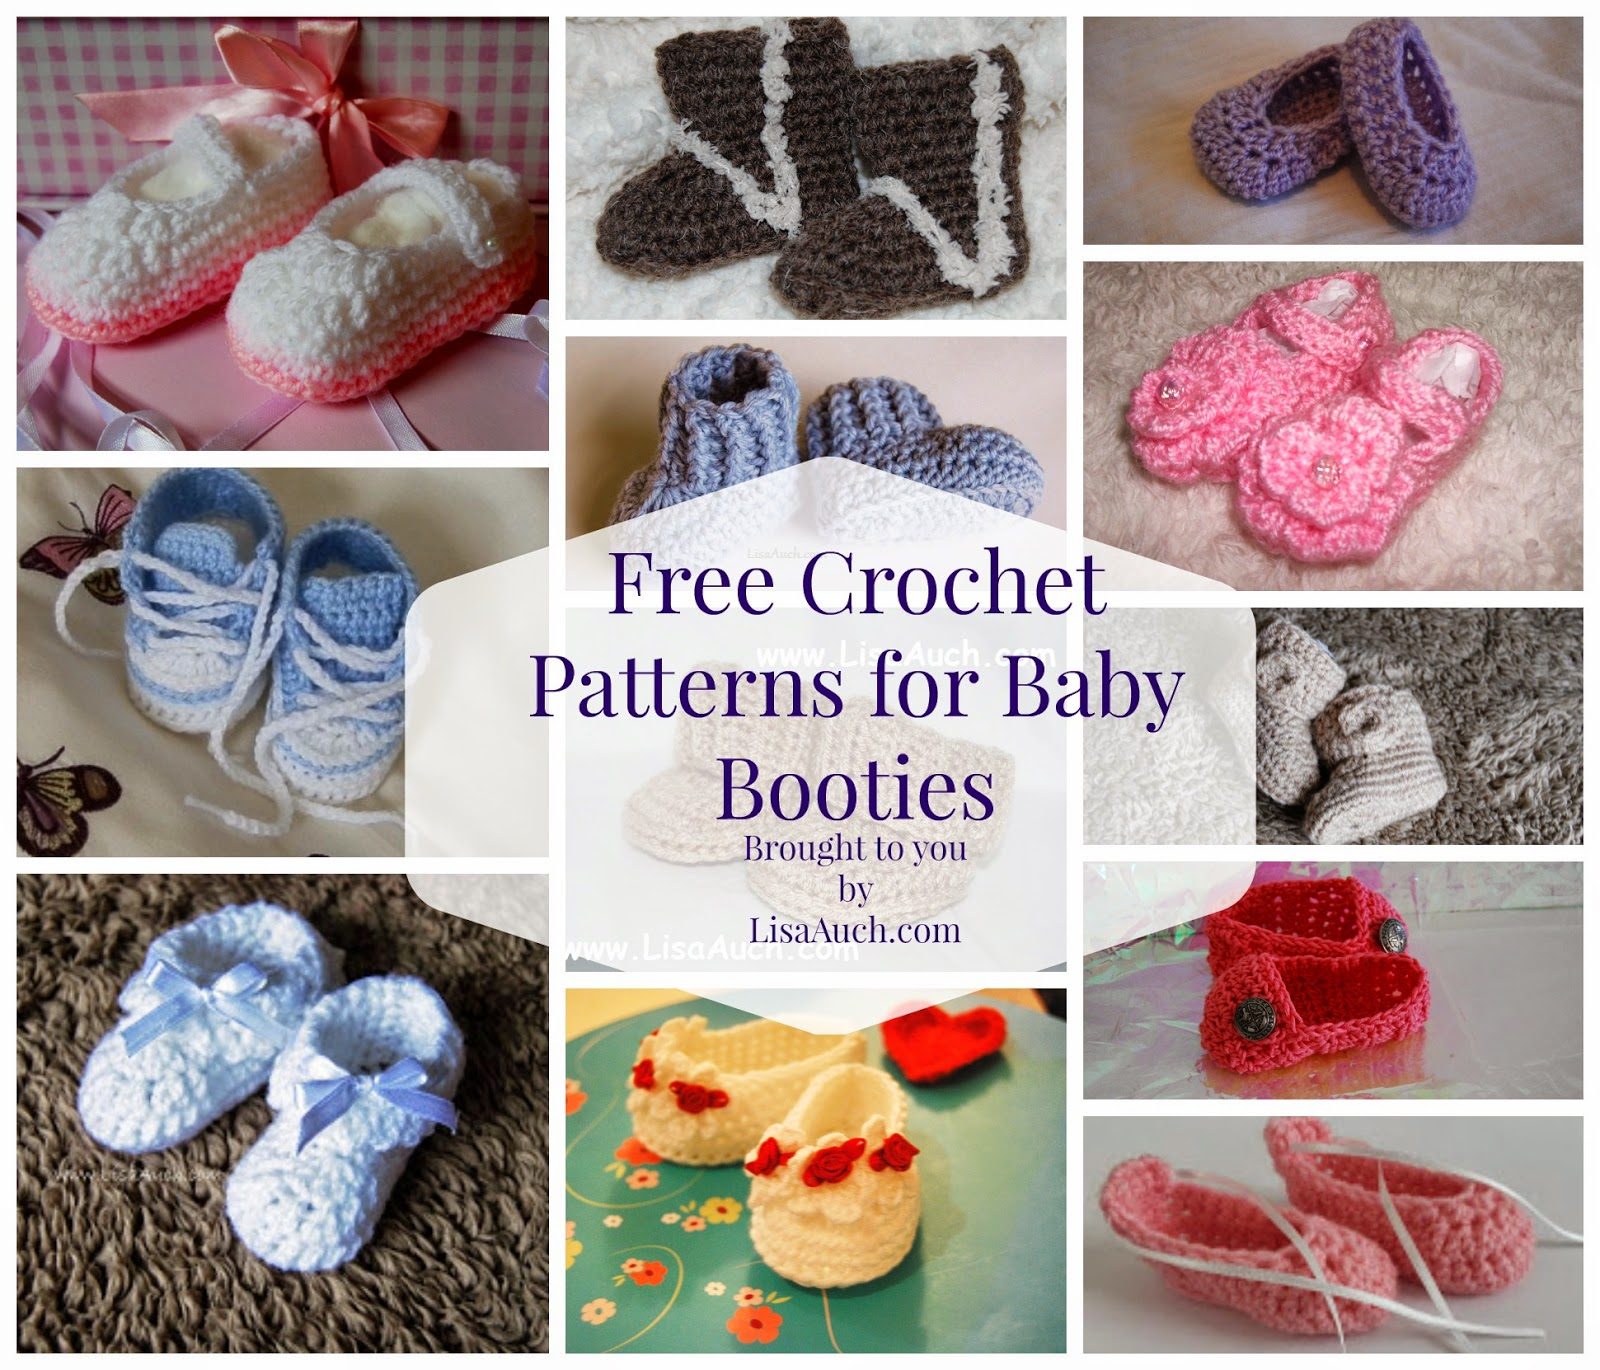 Free crochet patterns baby booties free crochet patterns and free crochet baby booties patterns baby booties free crochet patterns bankloansurffo Choice Image